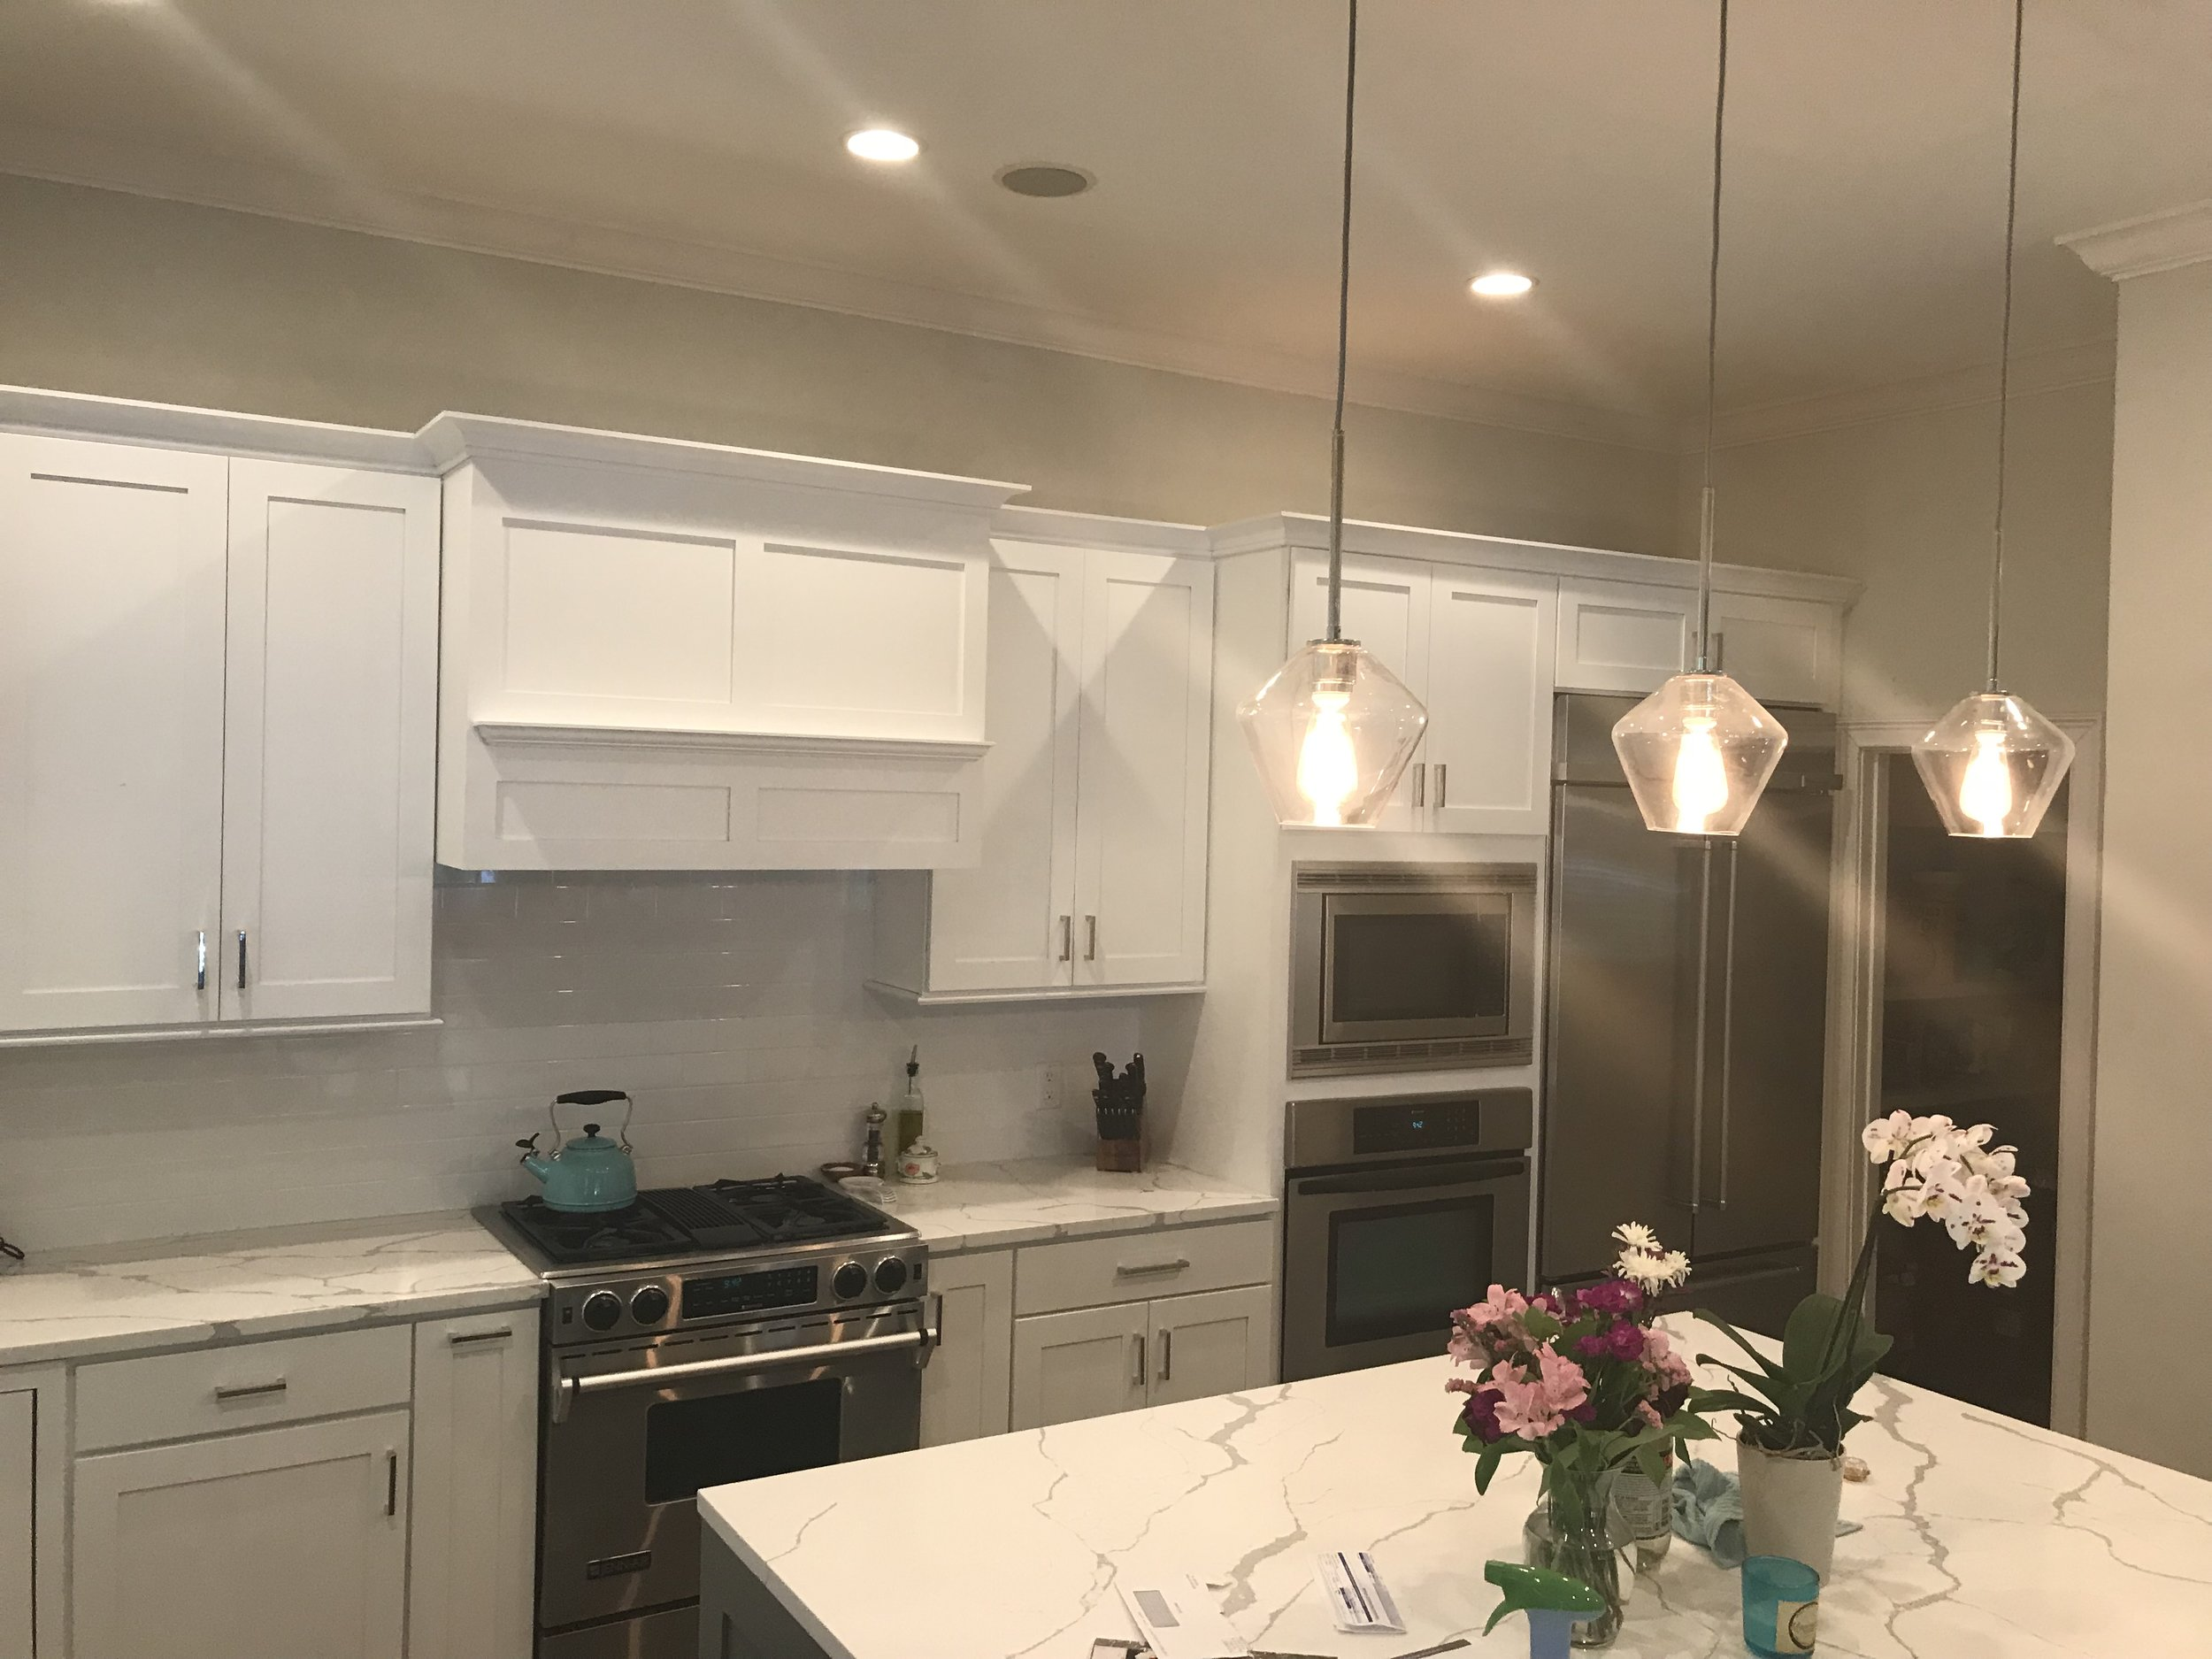 Wise Kitchen Remodel - Charleston, South Carolina